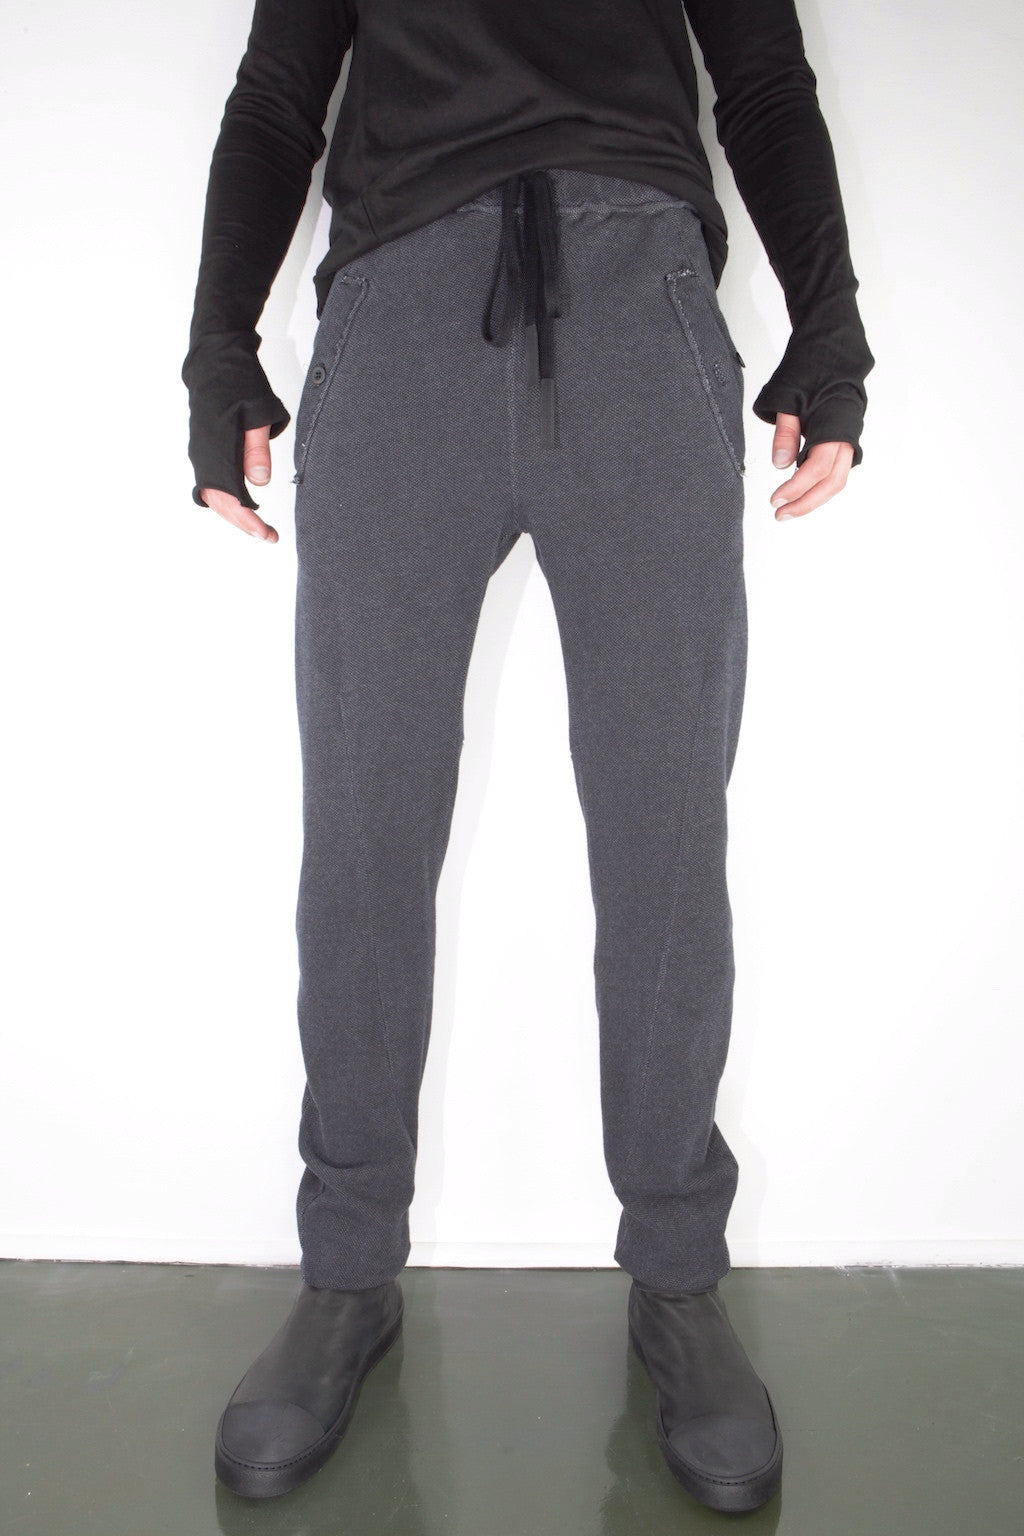 darted anatomic trouser